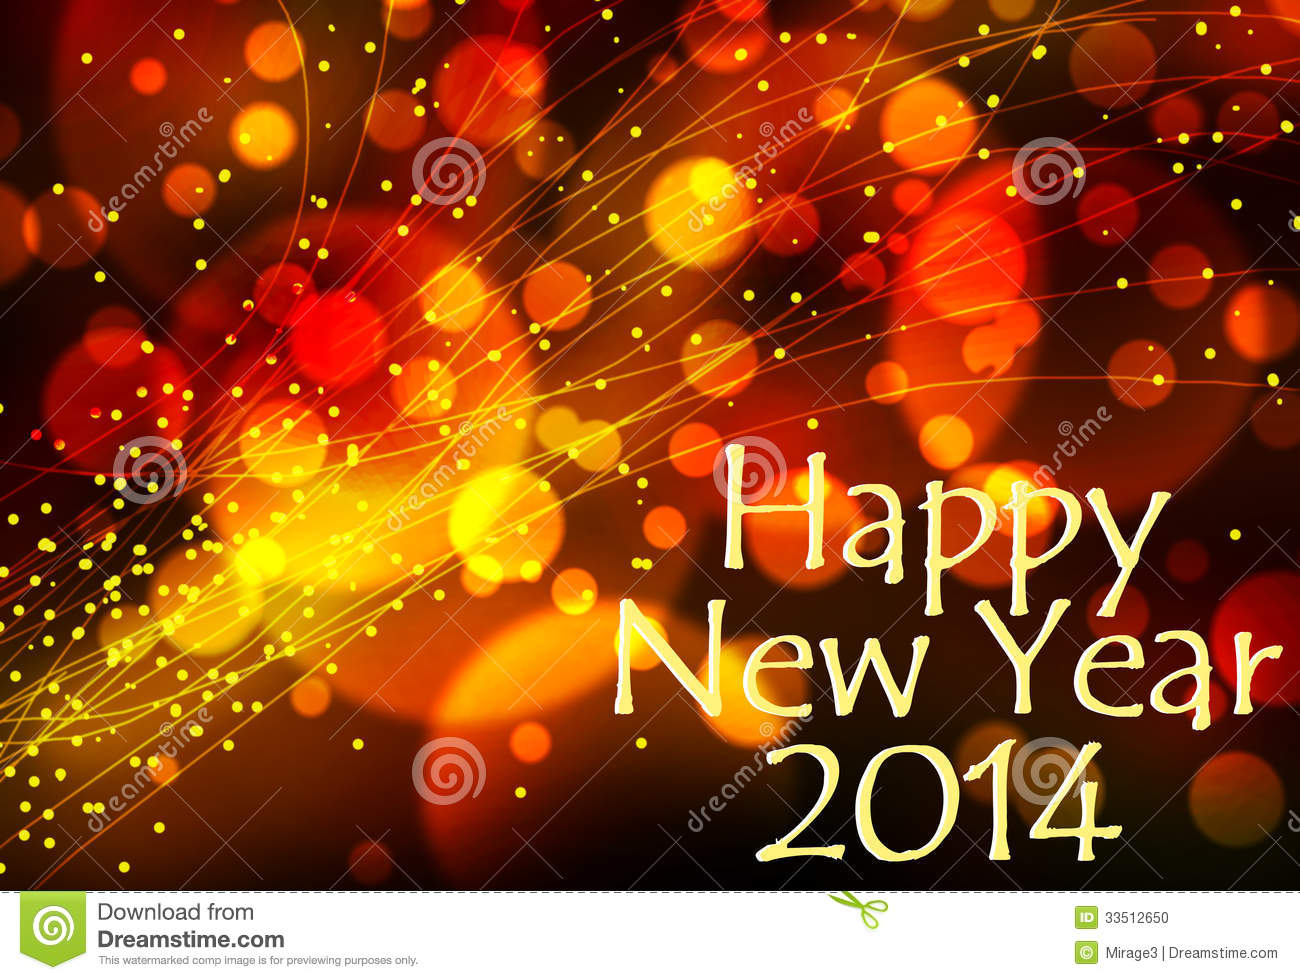 1300x980 - Happy New Year Backgrounds 43